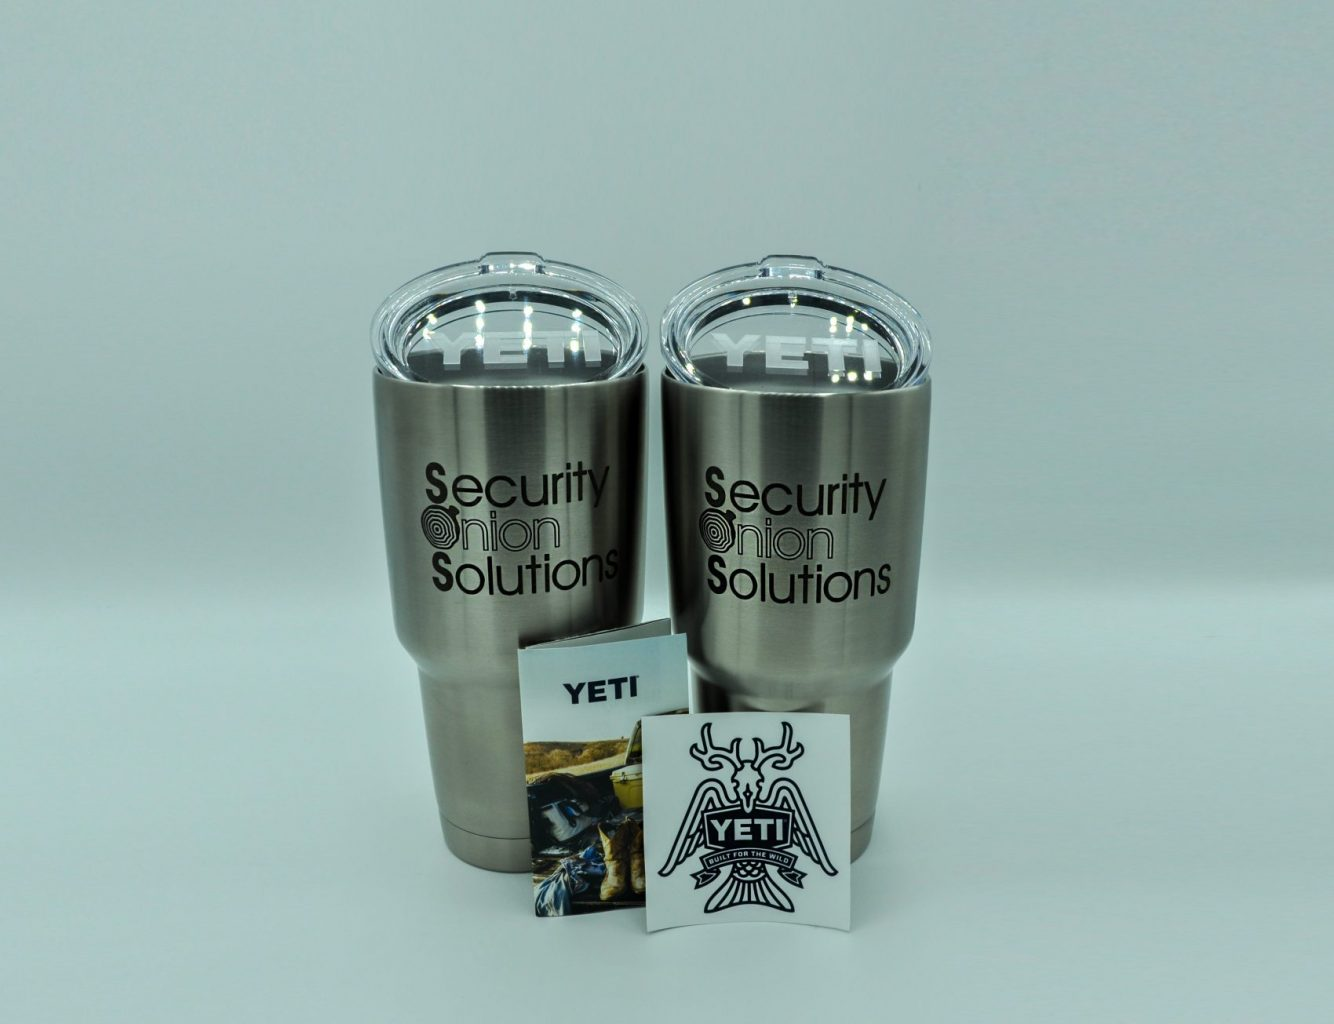 Security Onion Solutions Giveaways